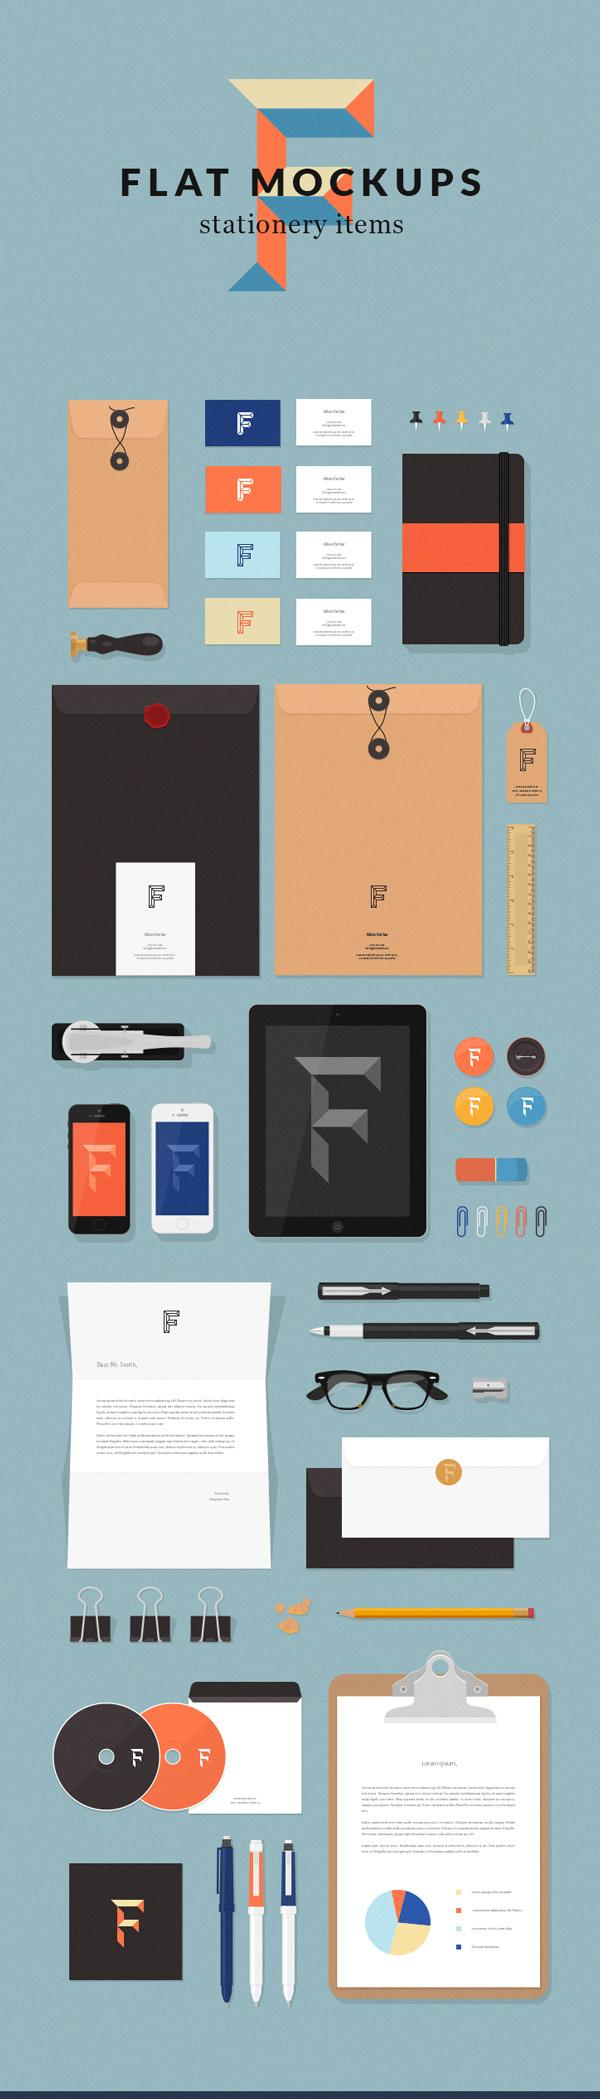 flat_mockups_stationery_items